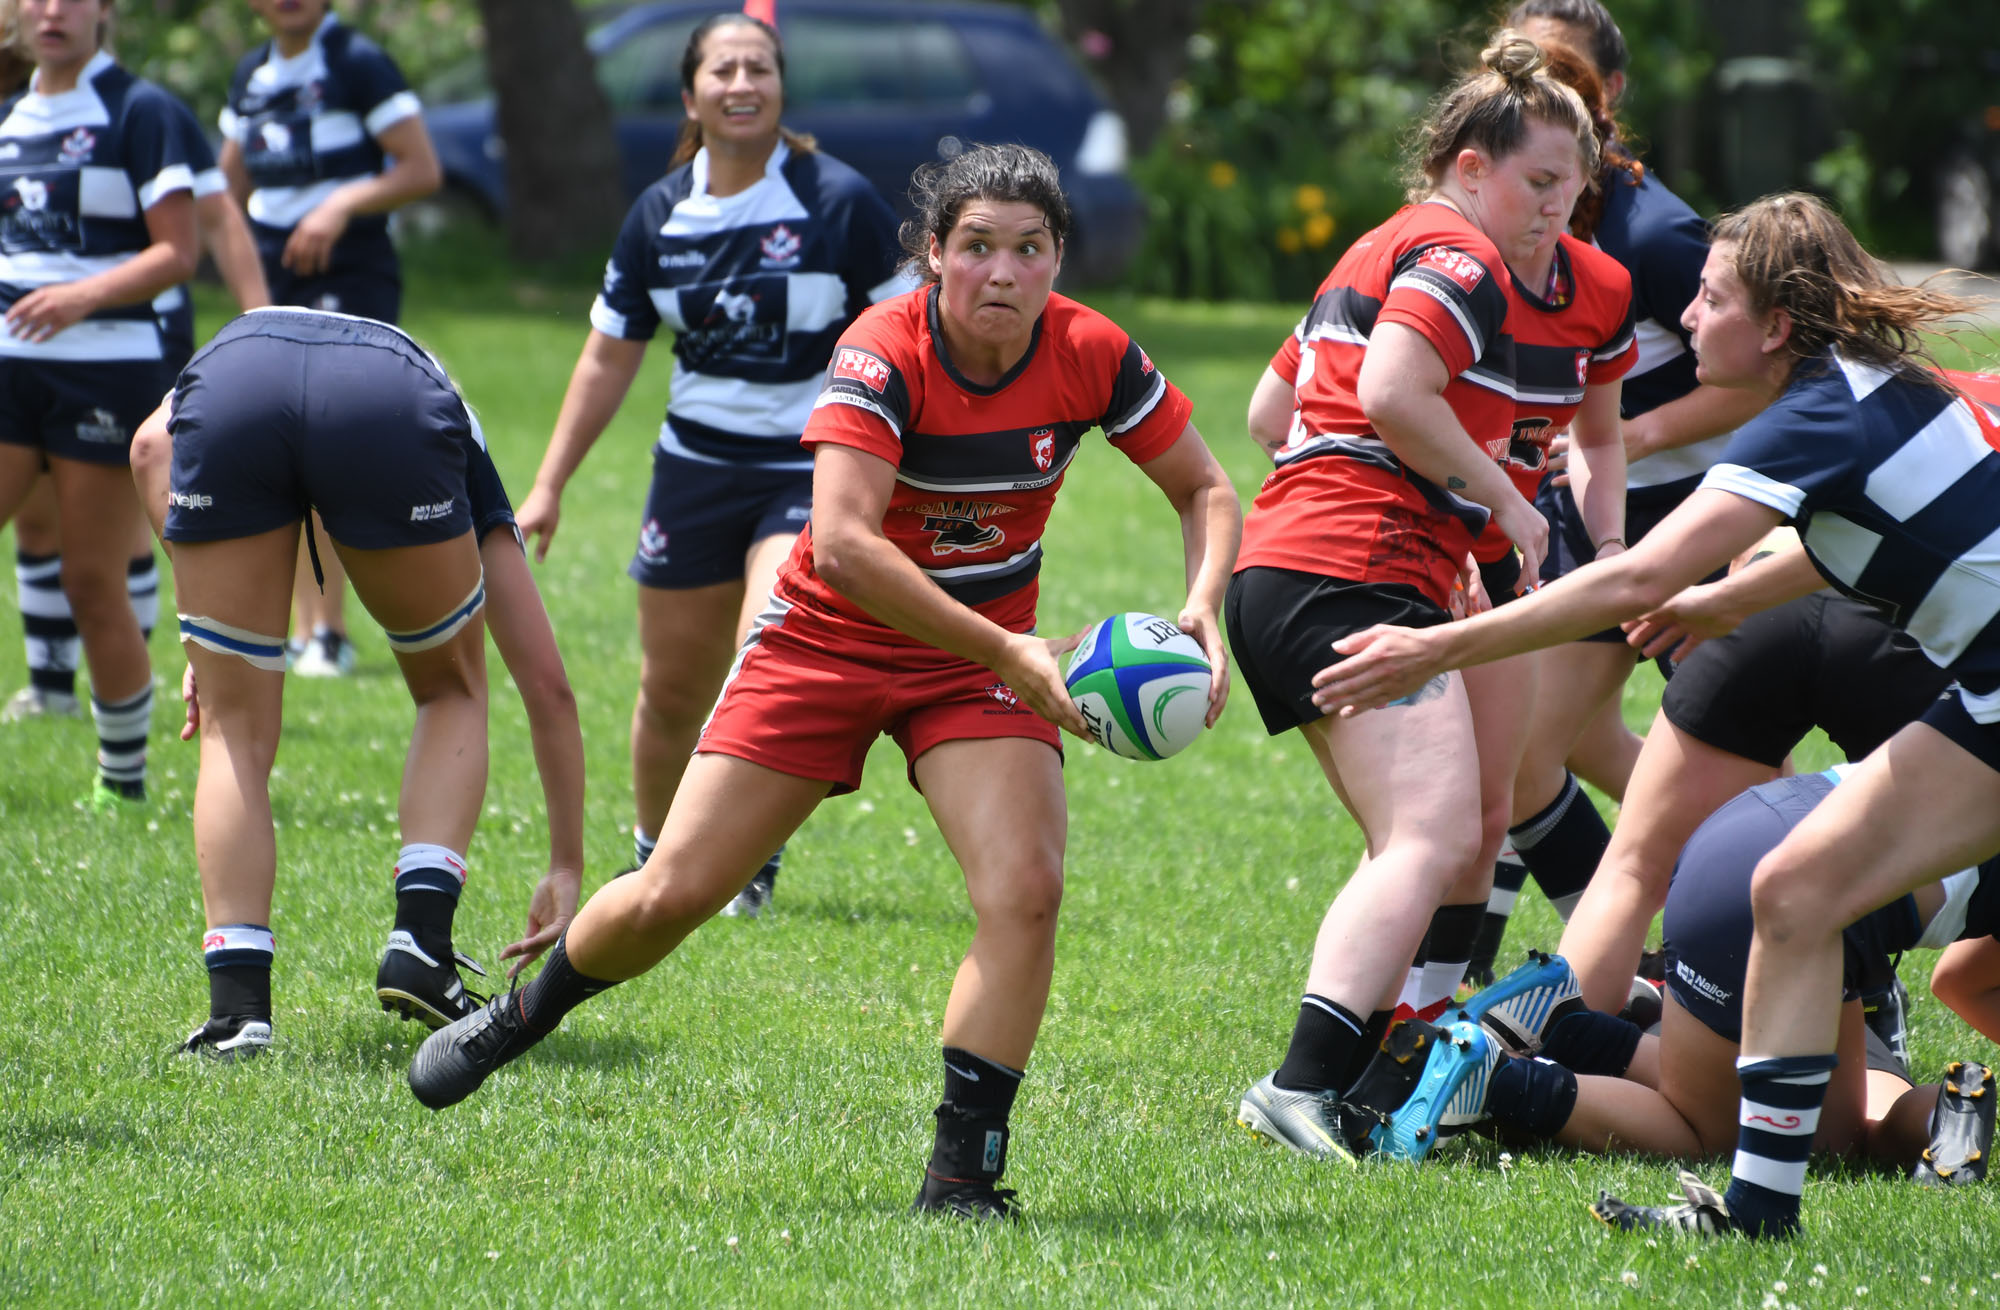 Photos: Guelph Redcoats-Toronto Nomads OWL rugby